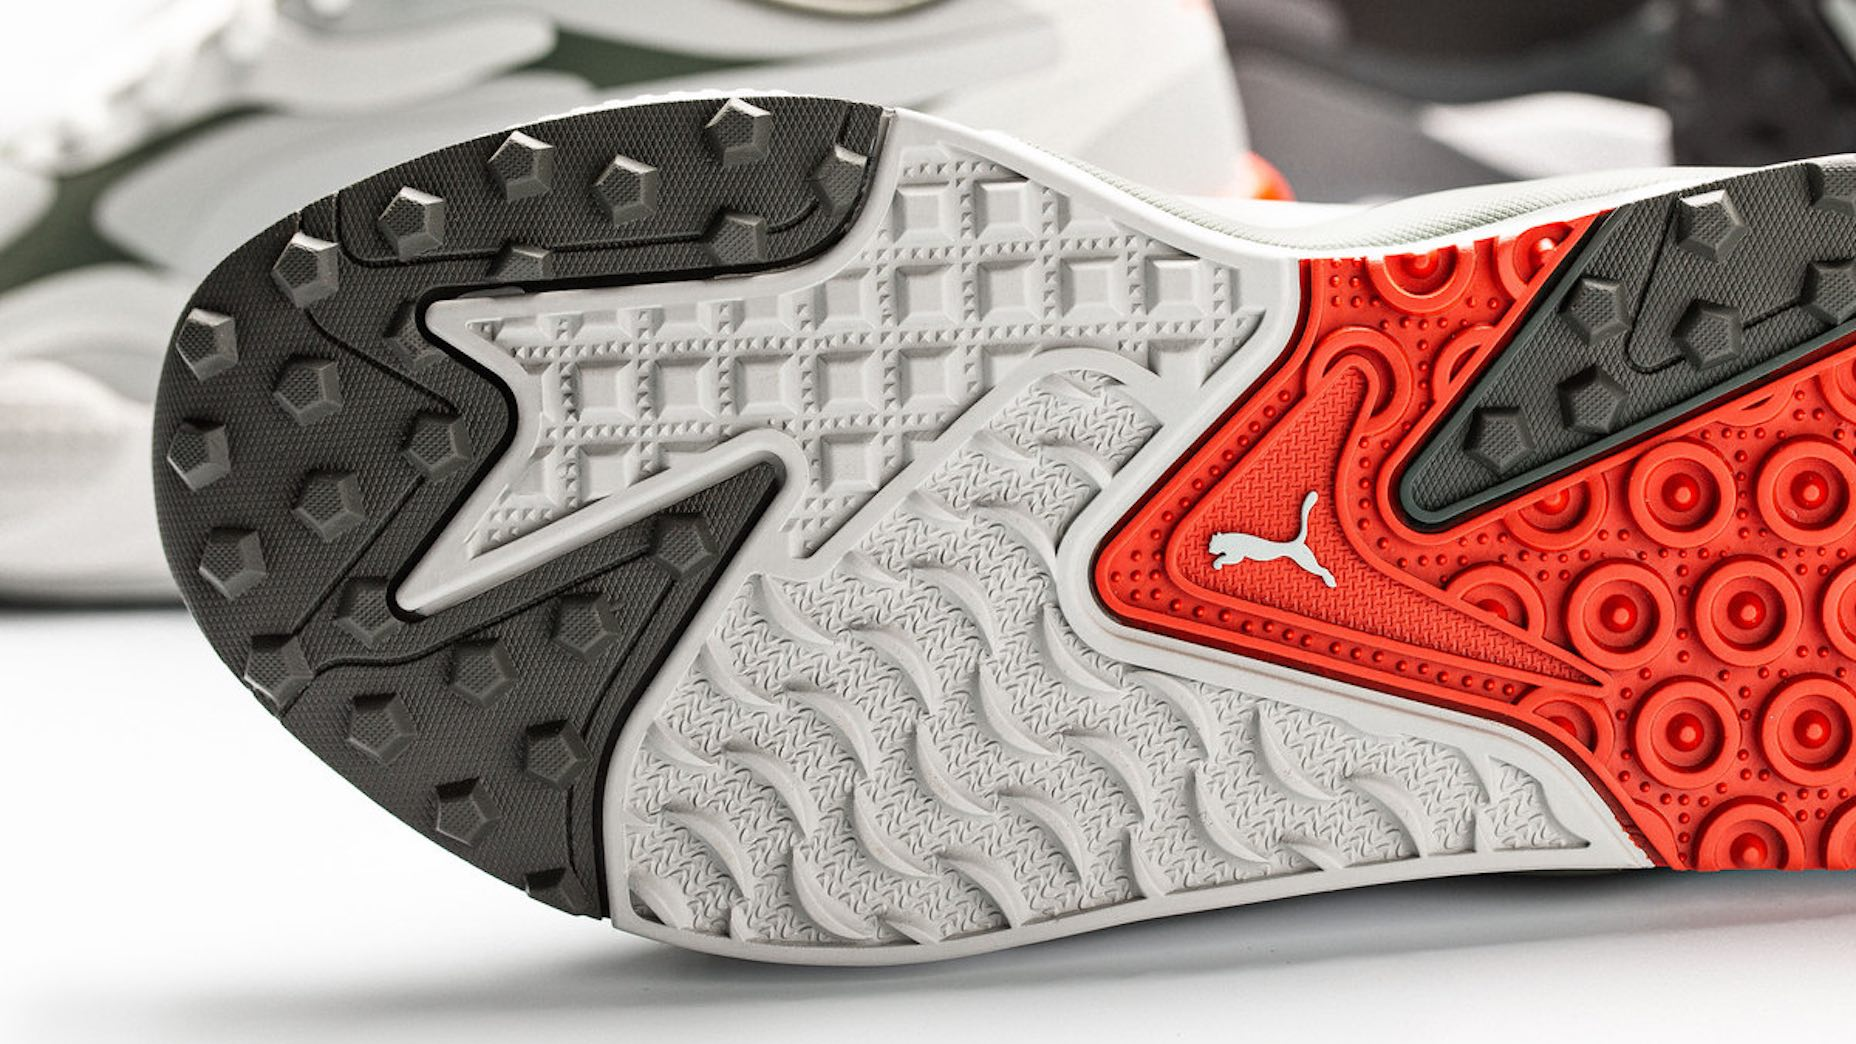 Puma S Rs G Shoe Draws Inspiration From Popular 80s Sneaker